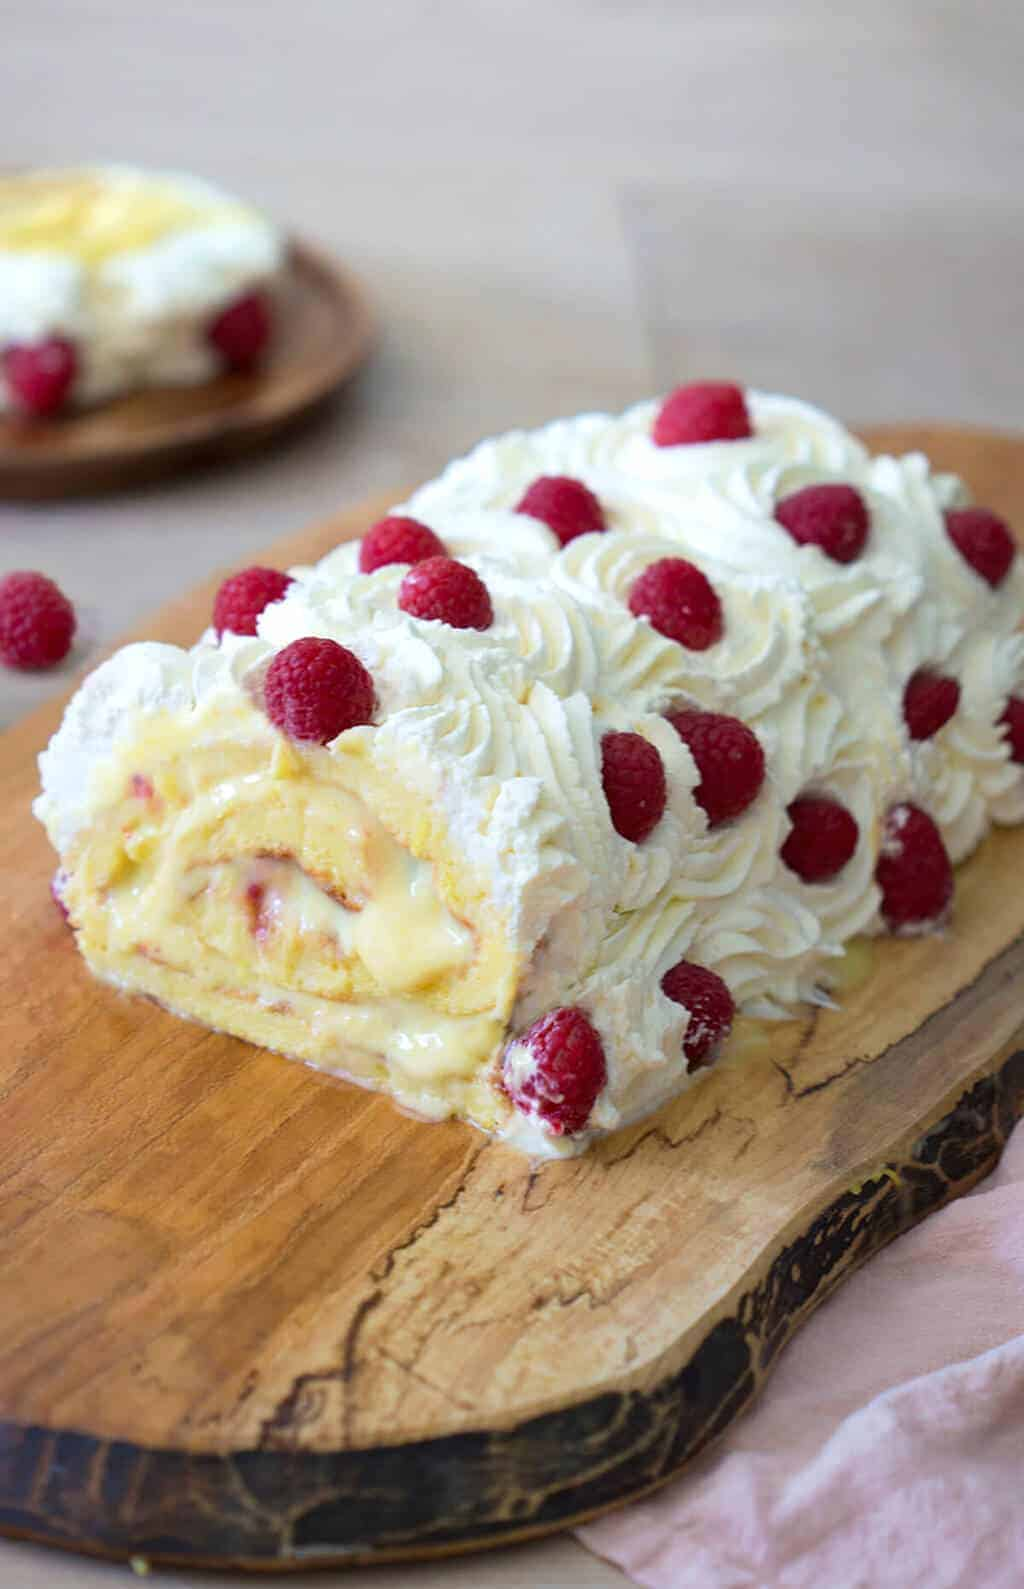 A photo of a Lemon Roll Cake with whipped cream and raspberries on top.